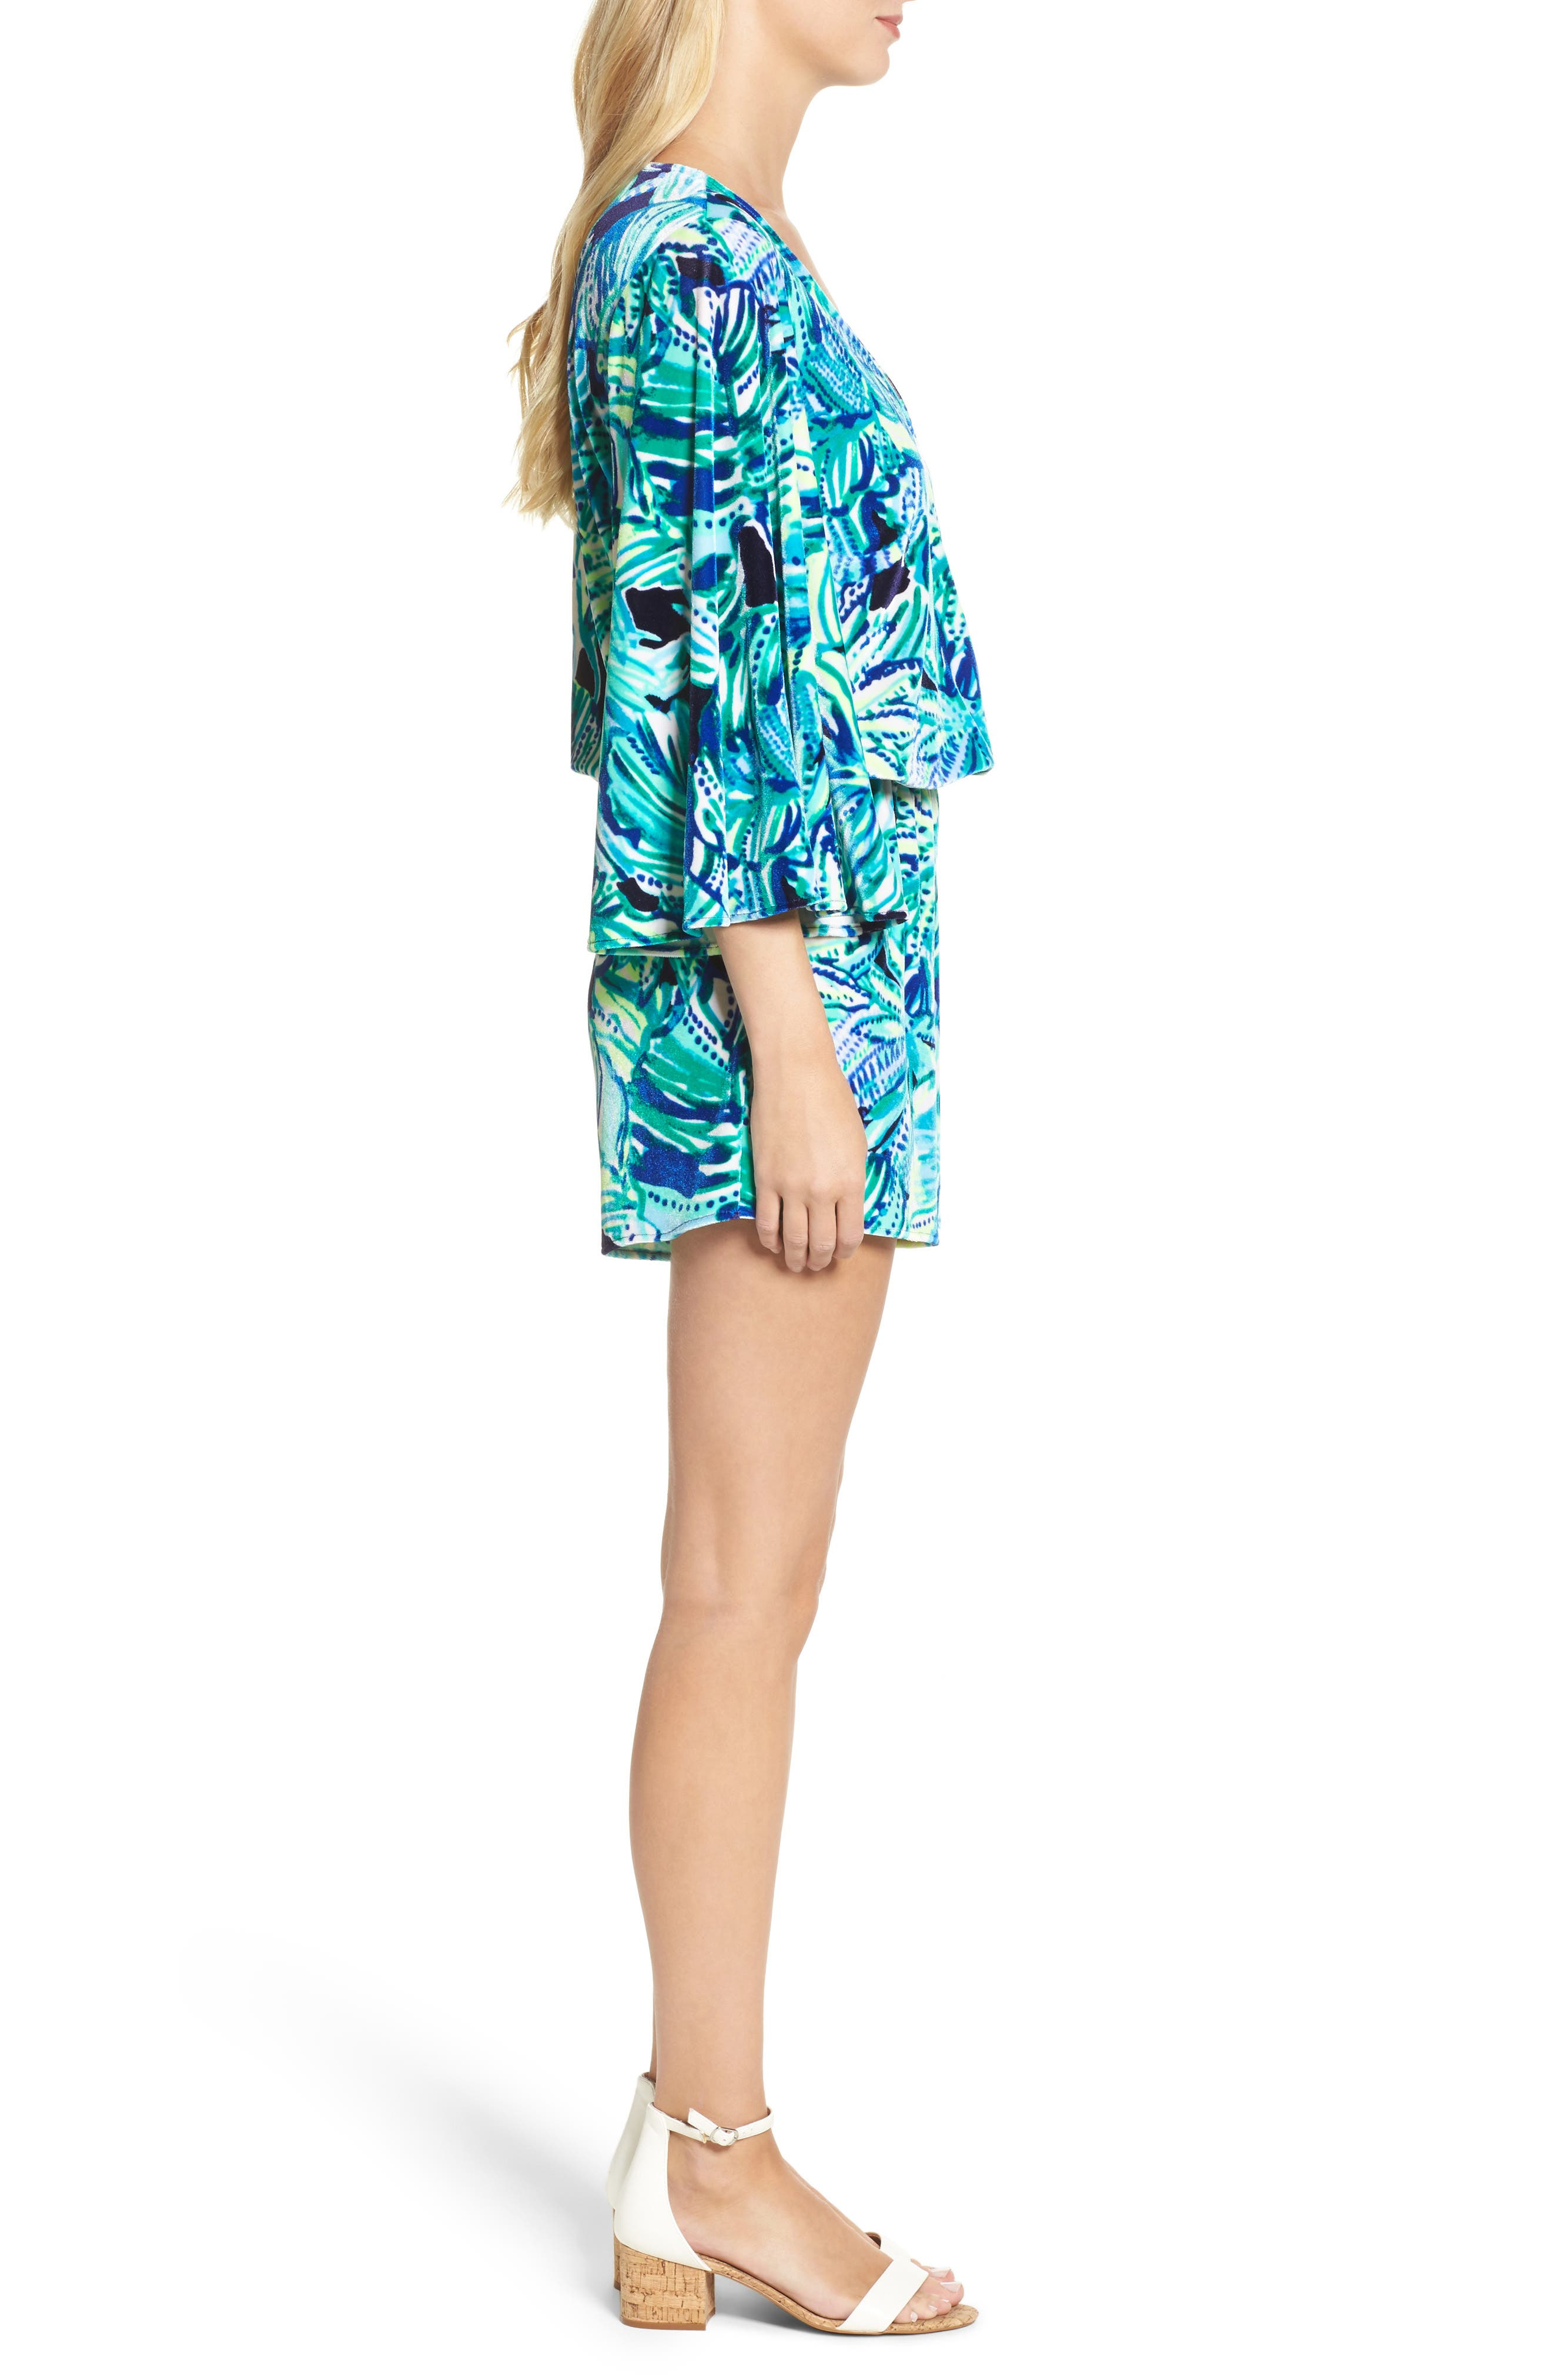 Lily Pulitzer<sup>®</sup> Viviana Romper,                             Alternate thumbnail 3, color,                             440